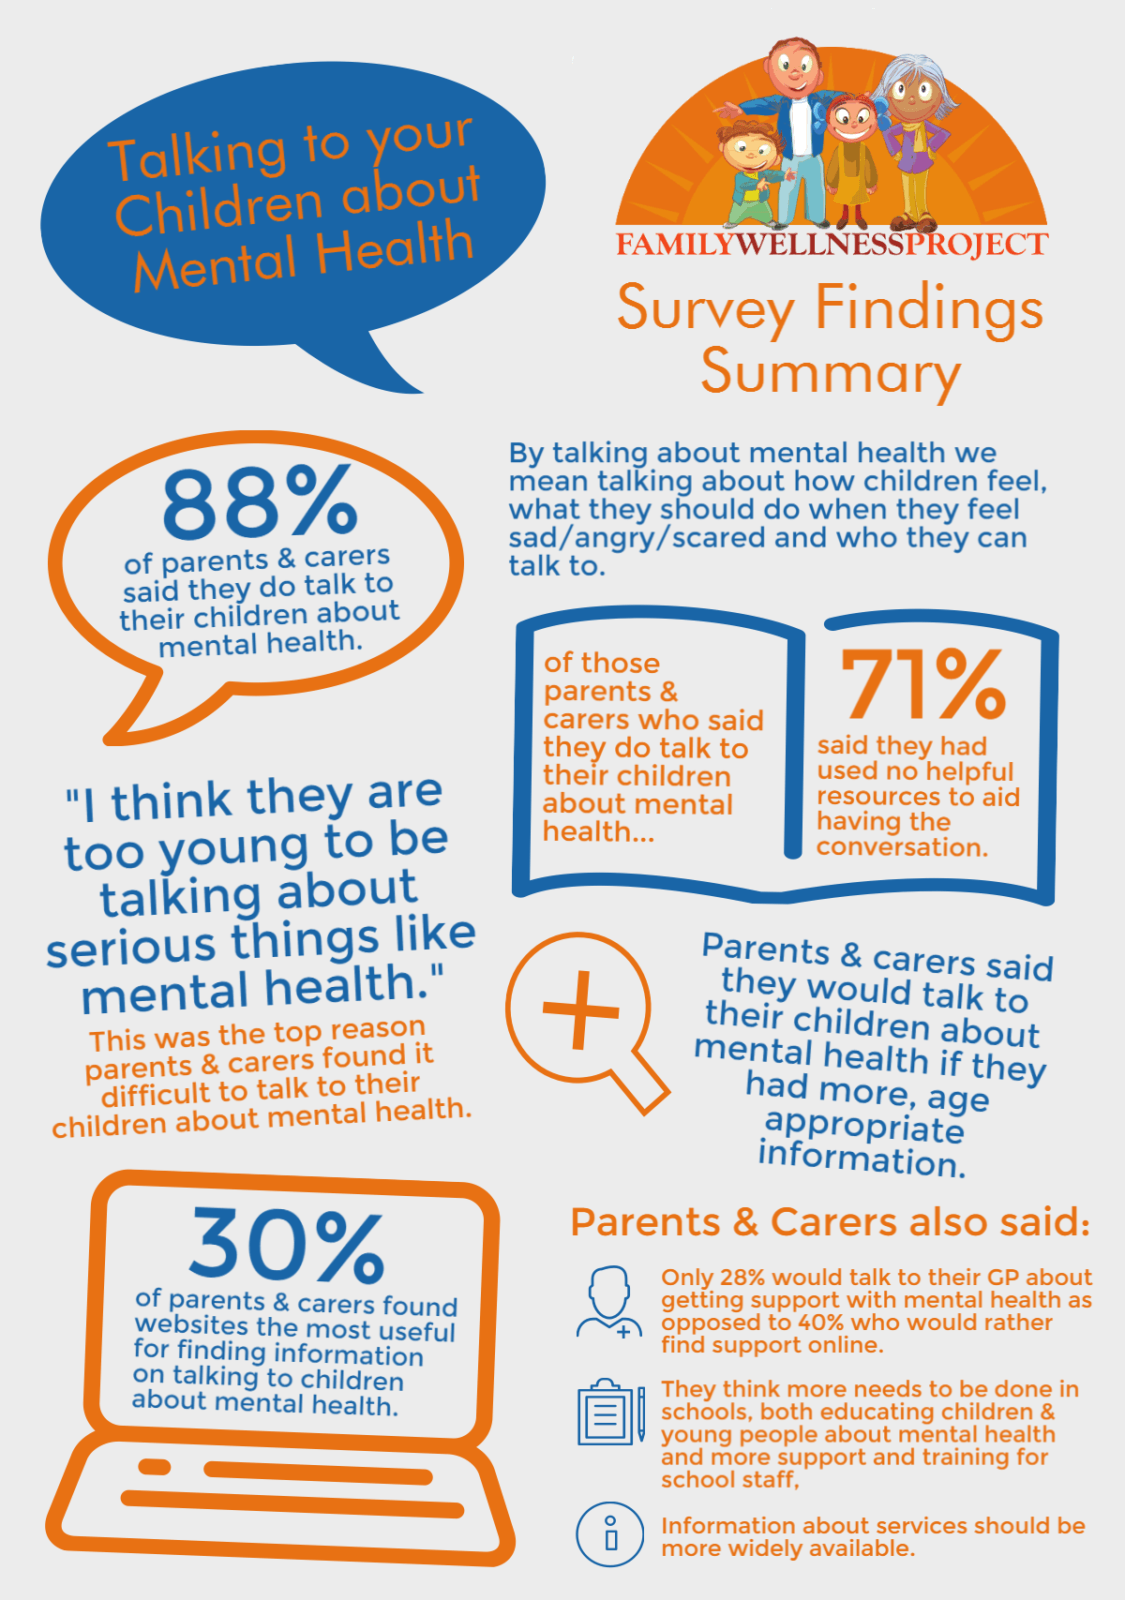 fwp-survey-findings